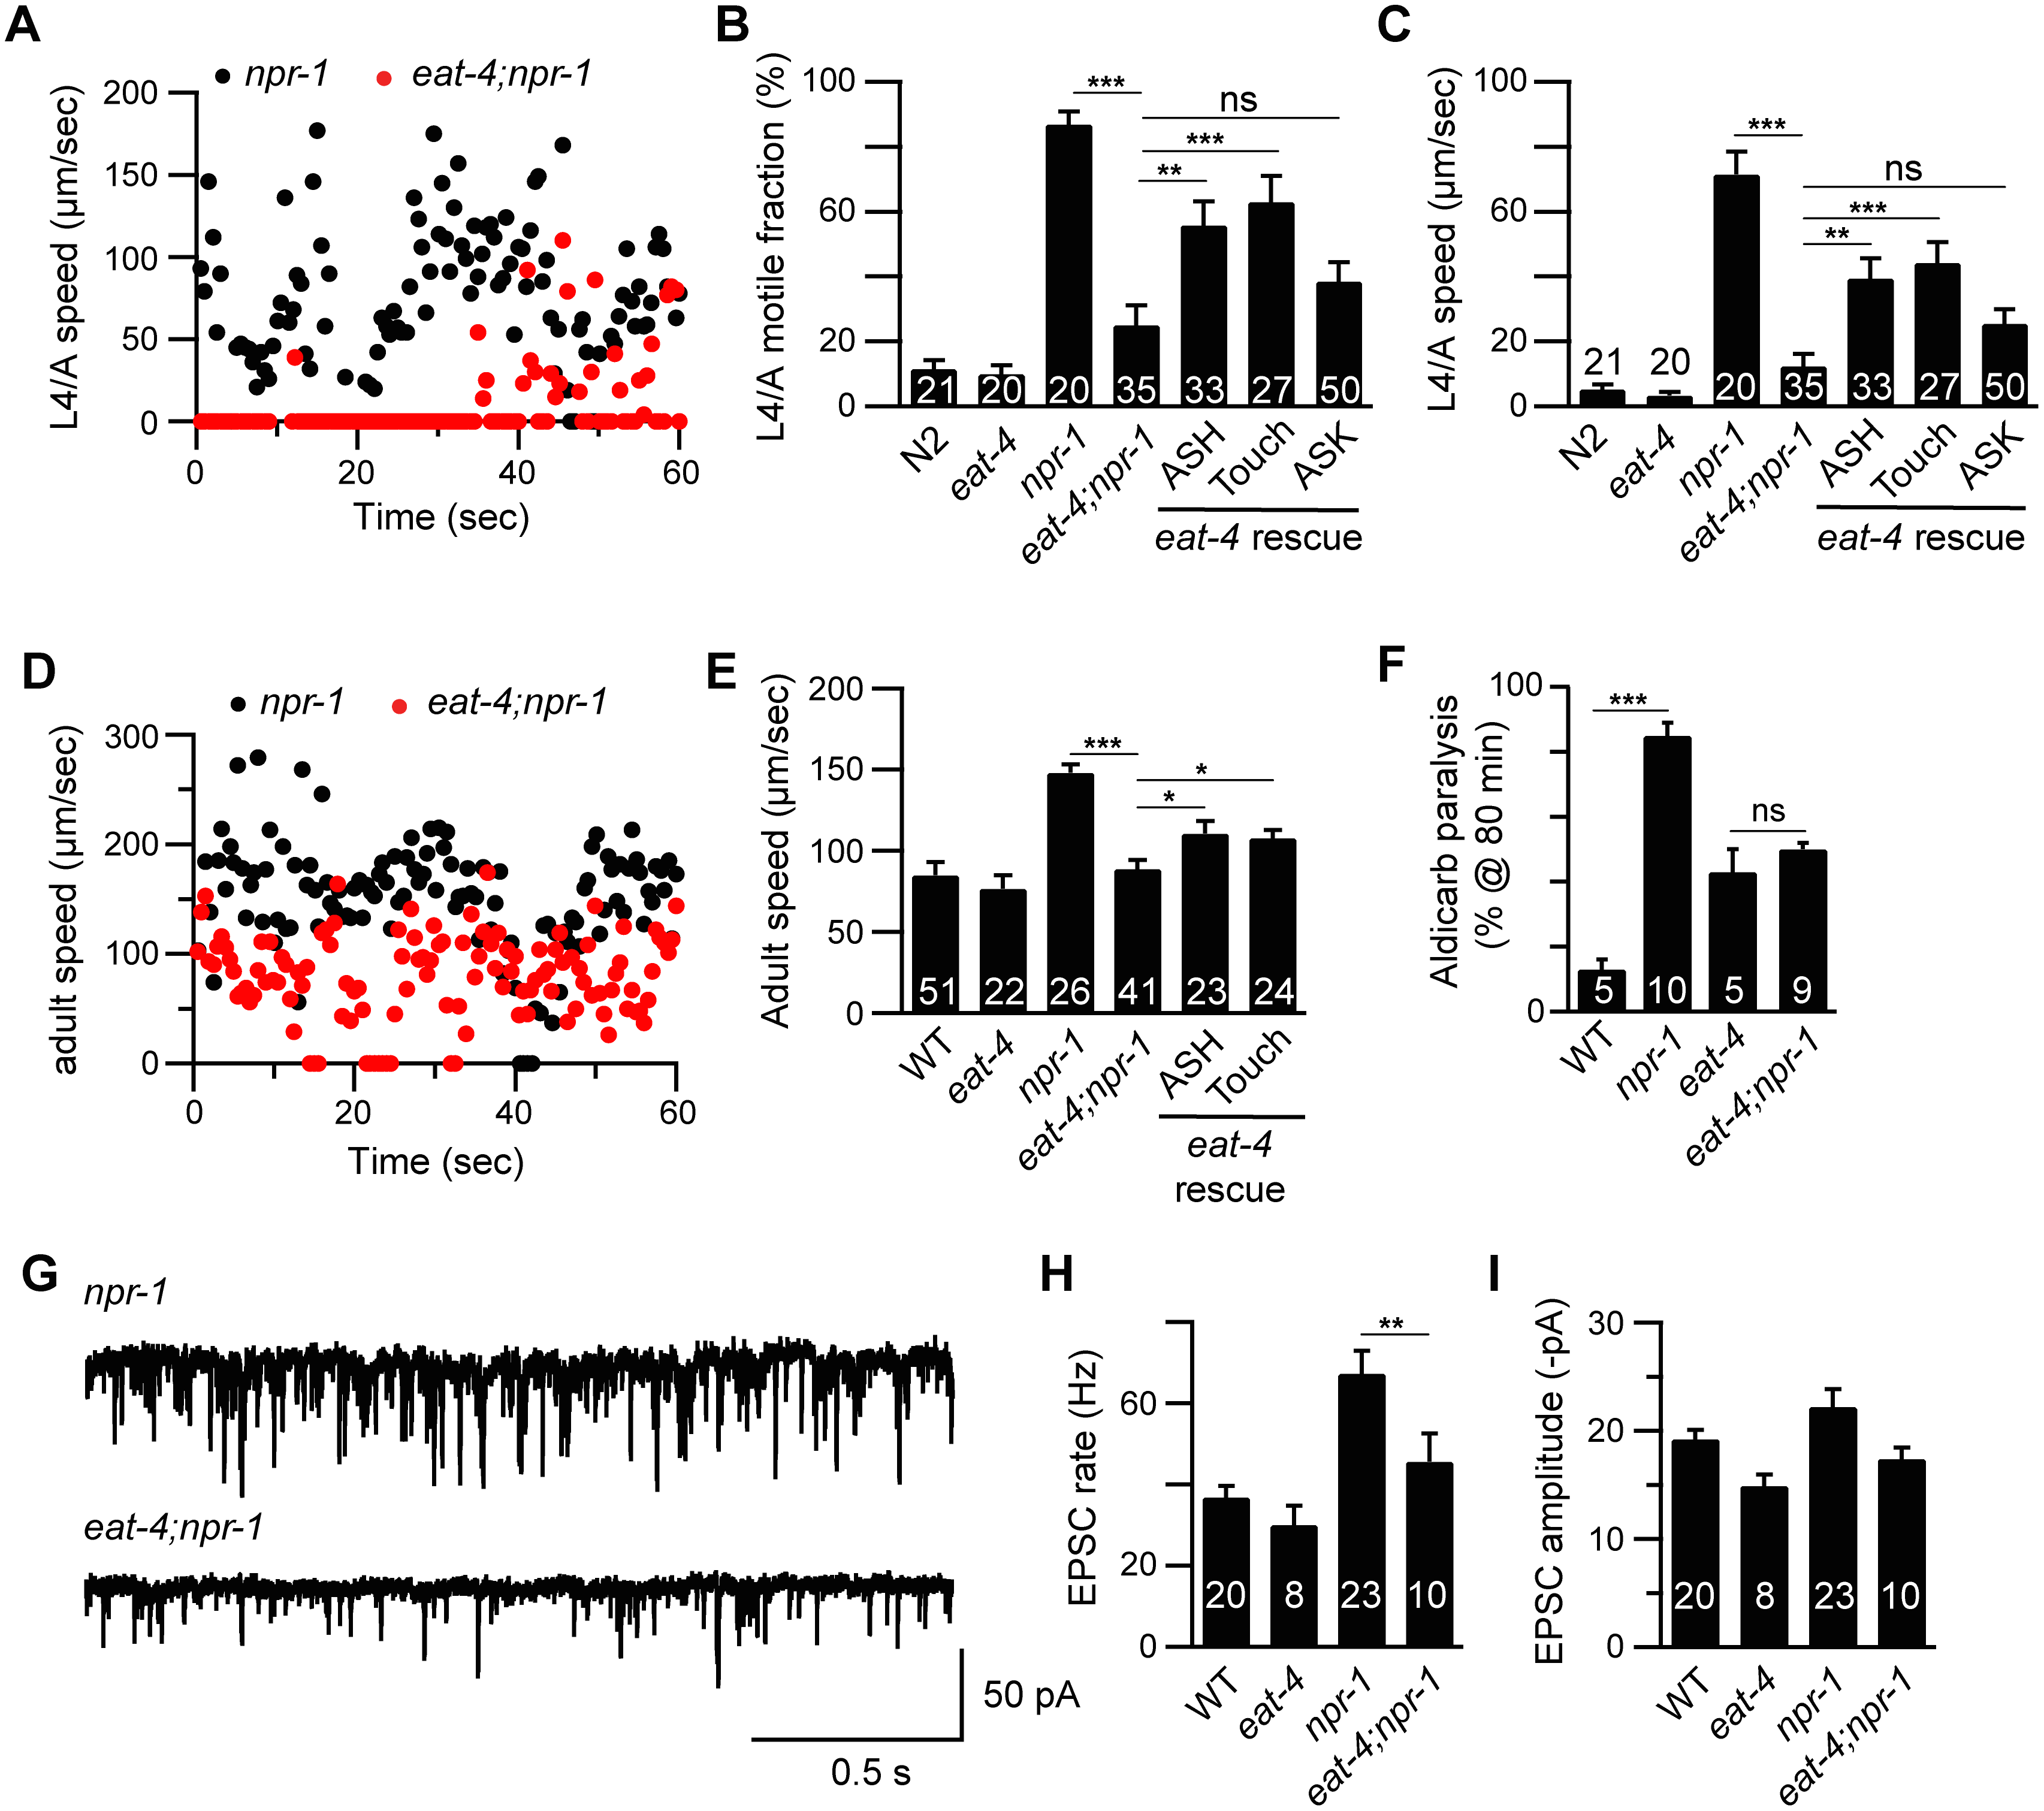 Glutamate released by sensory neurons is required for the <i>npr-1</i> locomotion and the cholinergic transmission defects.